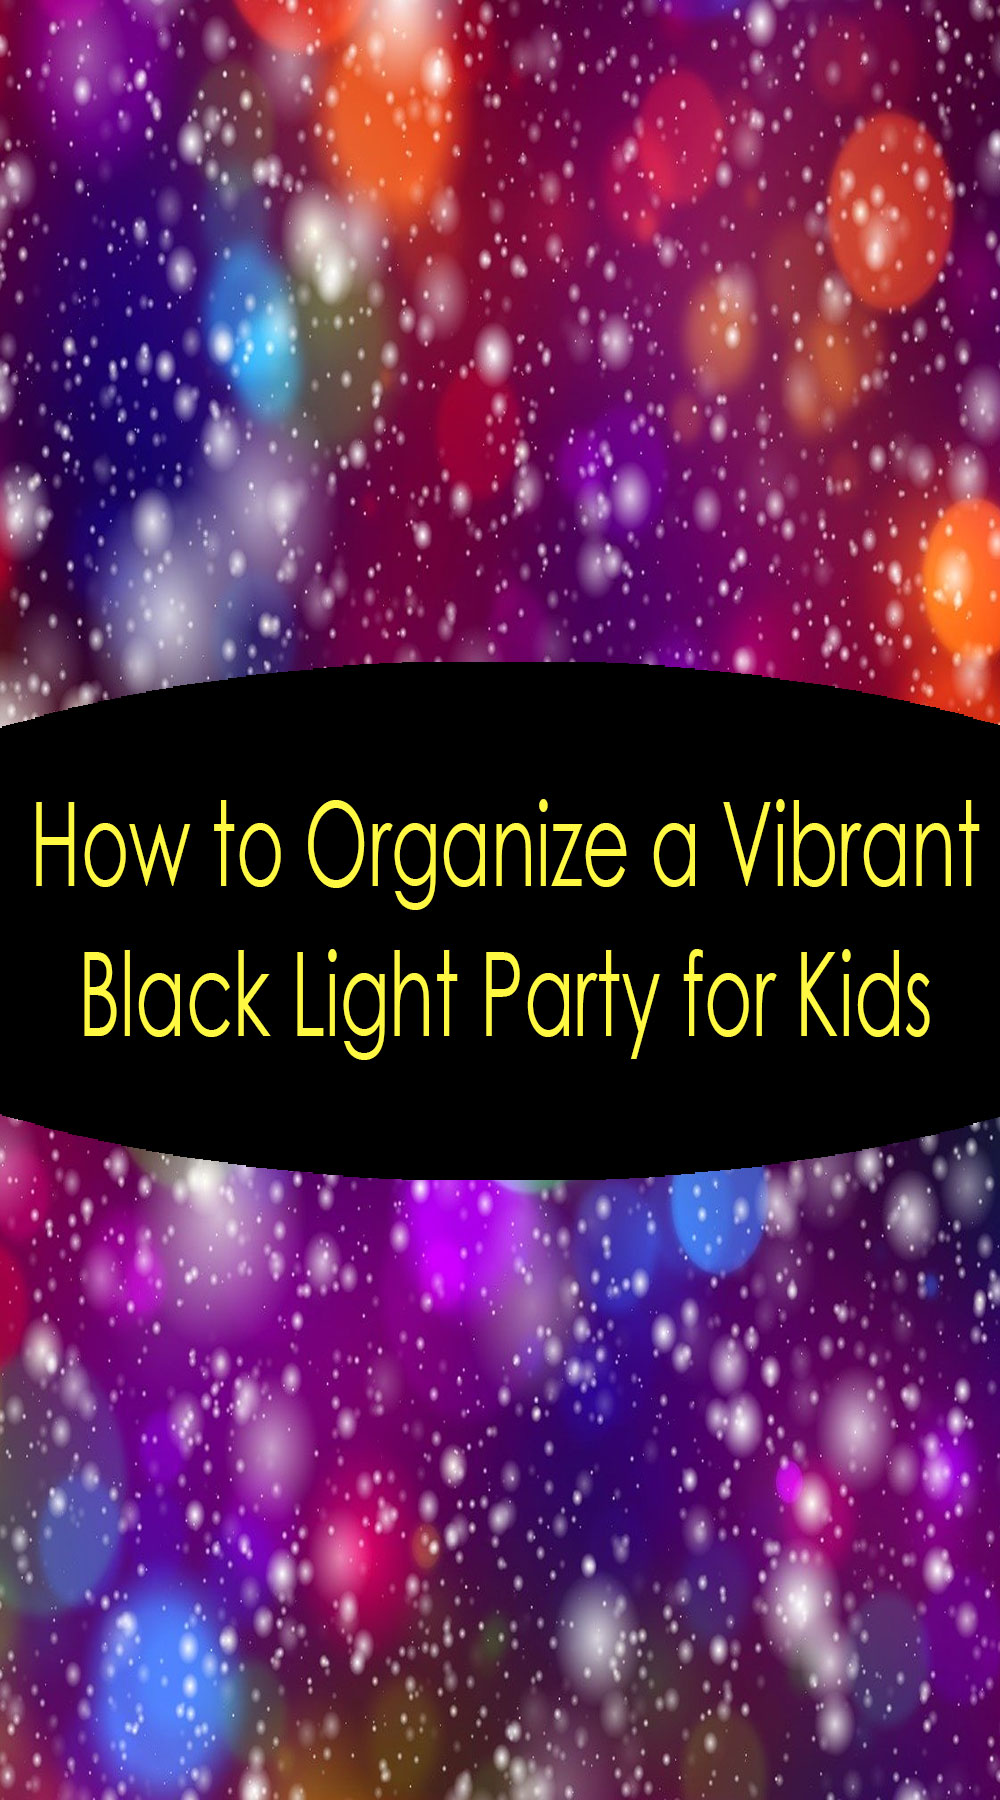 How to Organize a Vibrant Black Light Party for Kids